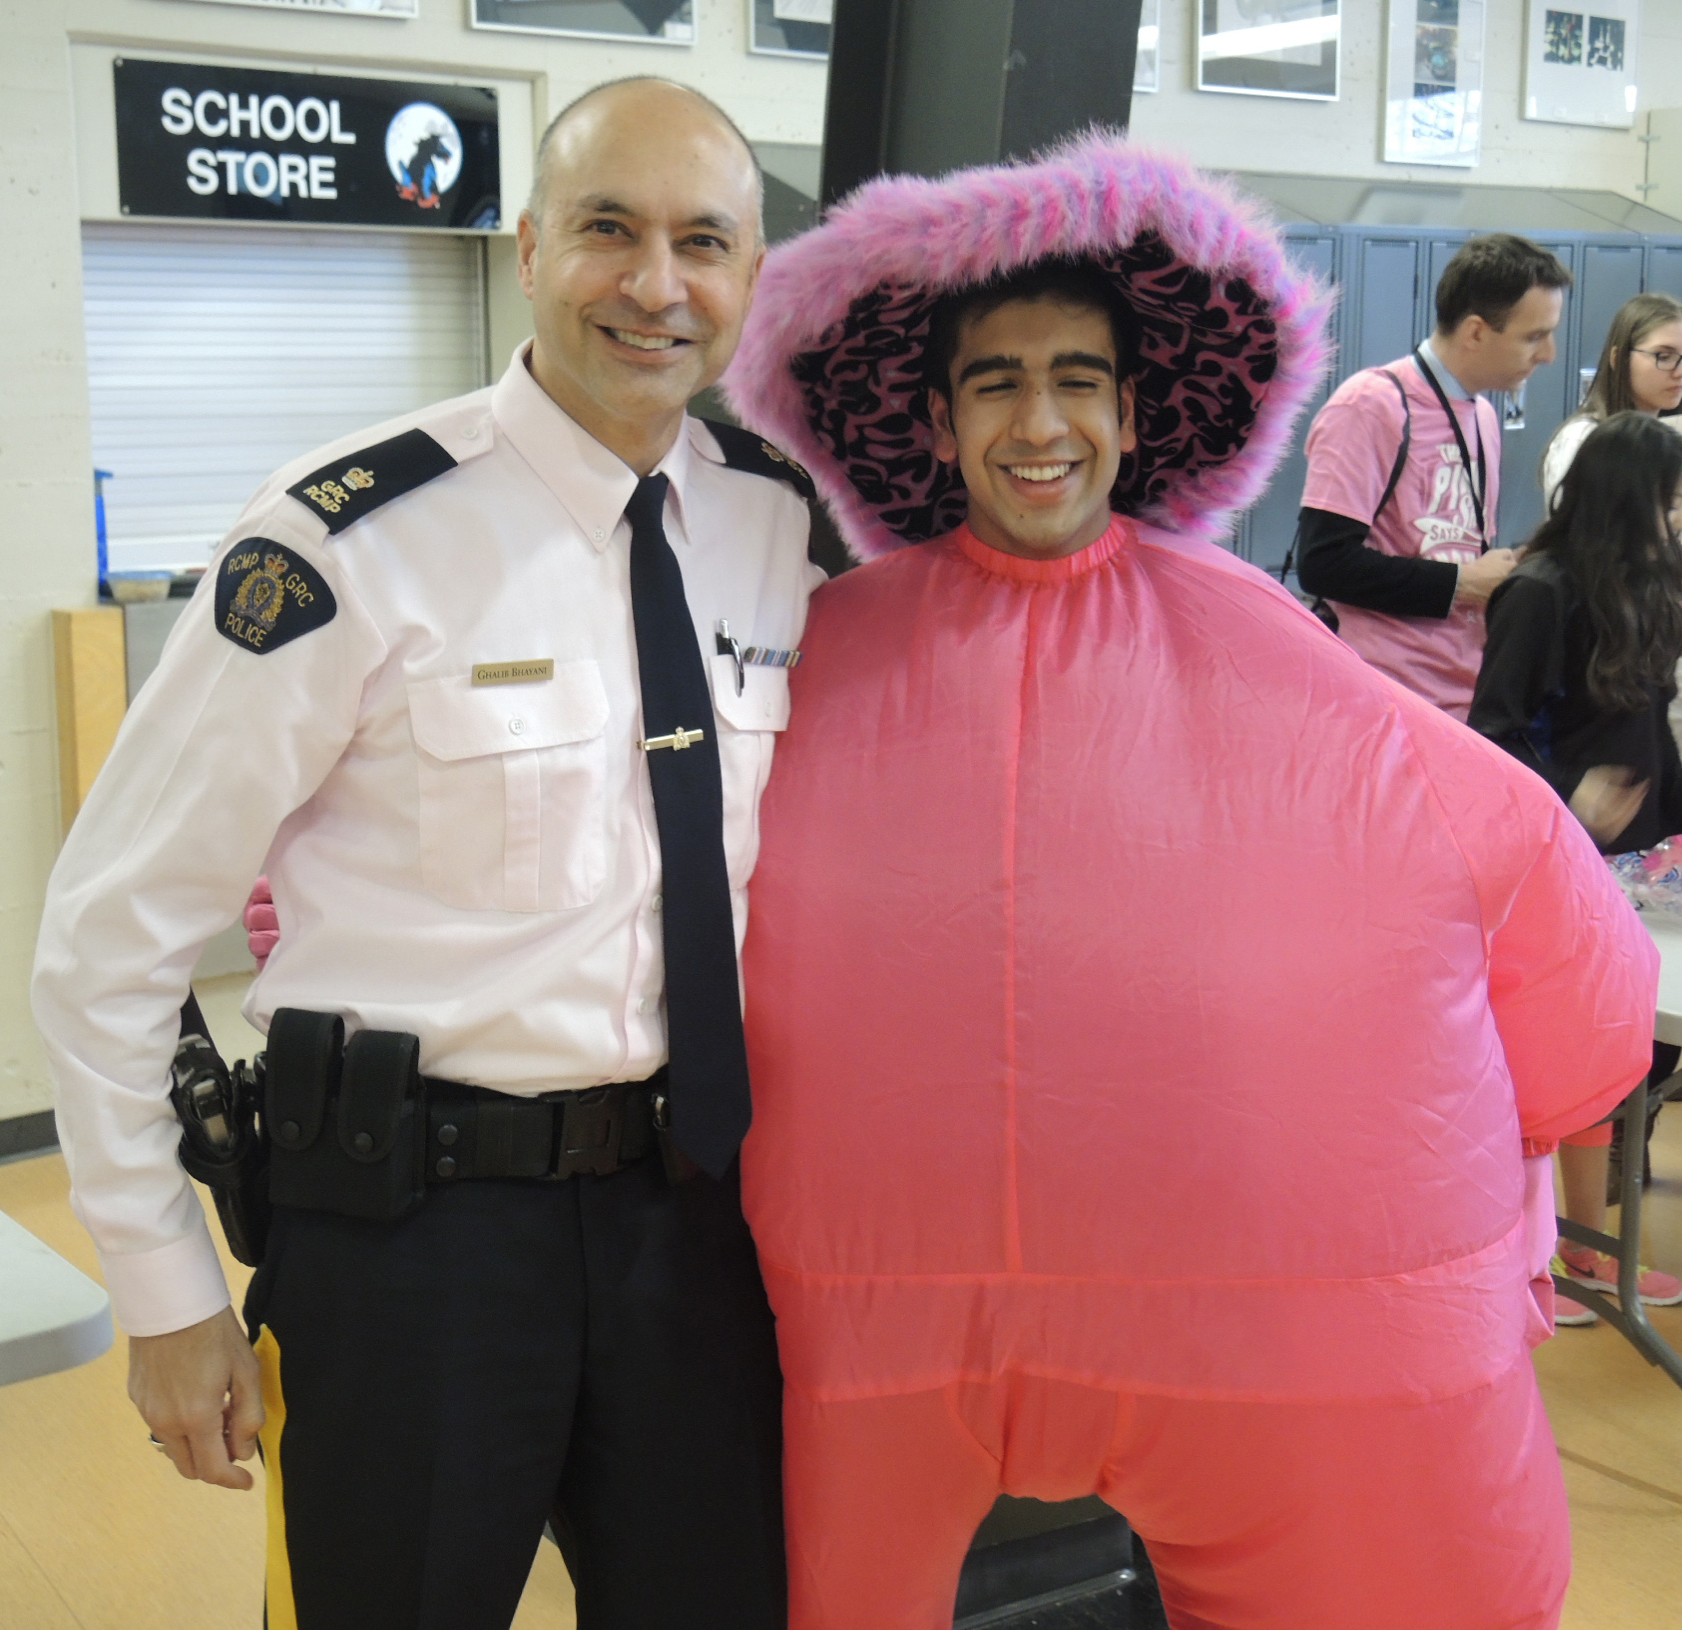 Insp. Bhayani with student on Pink Shirt Day